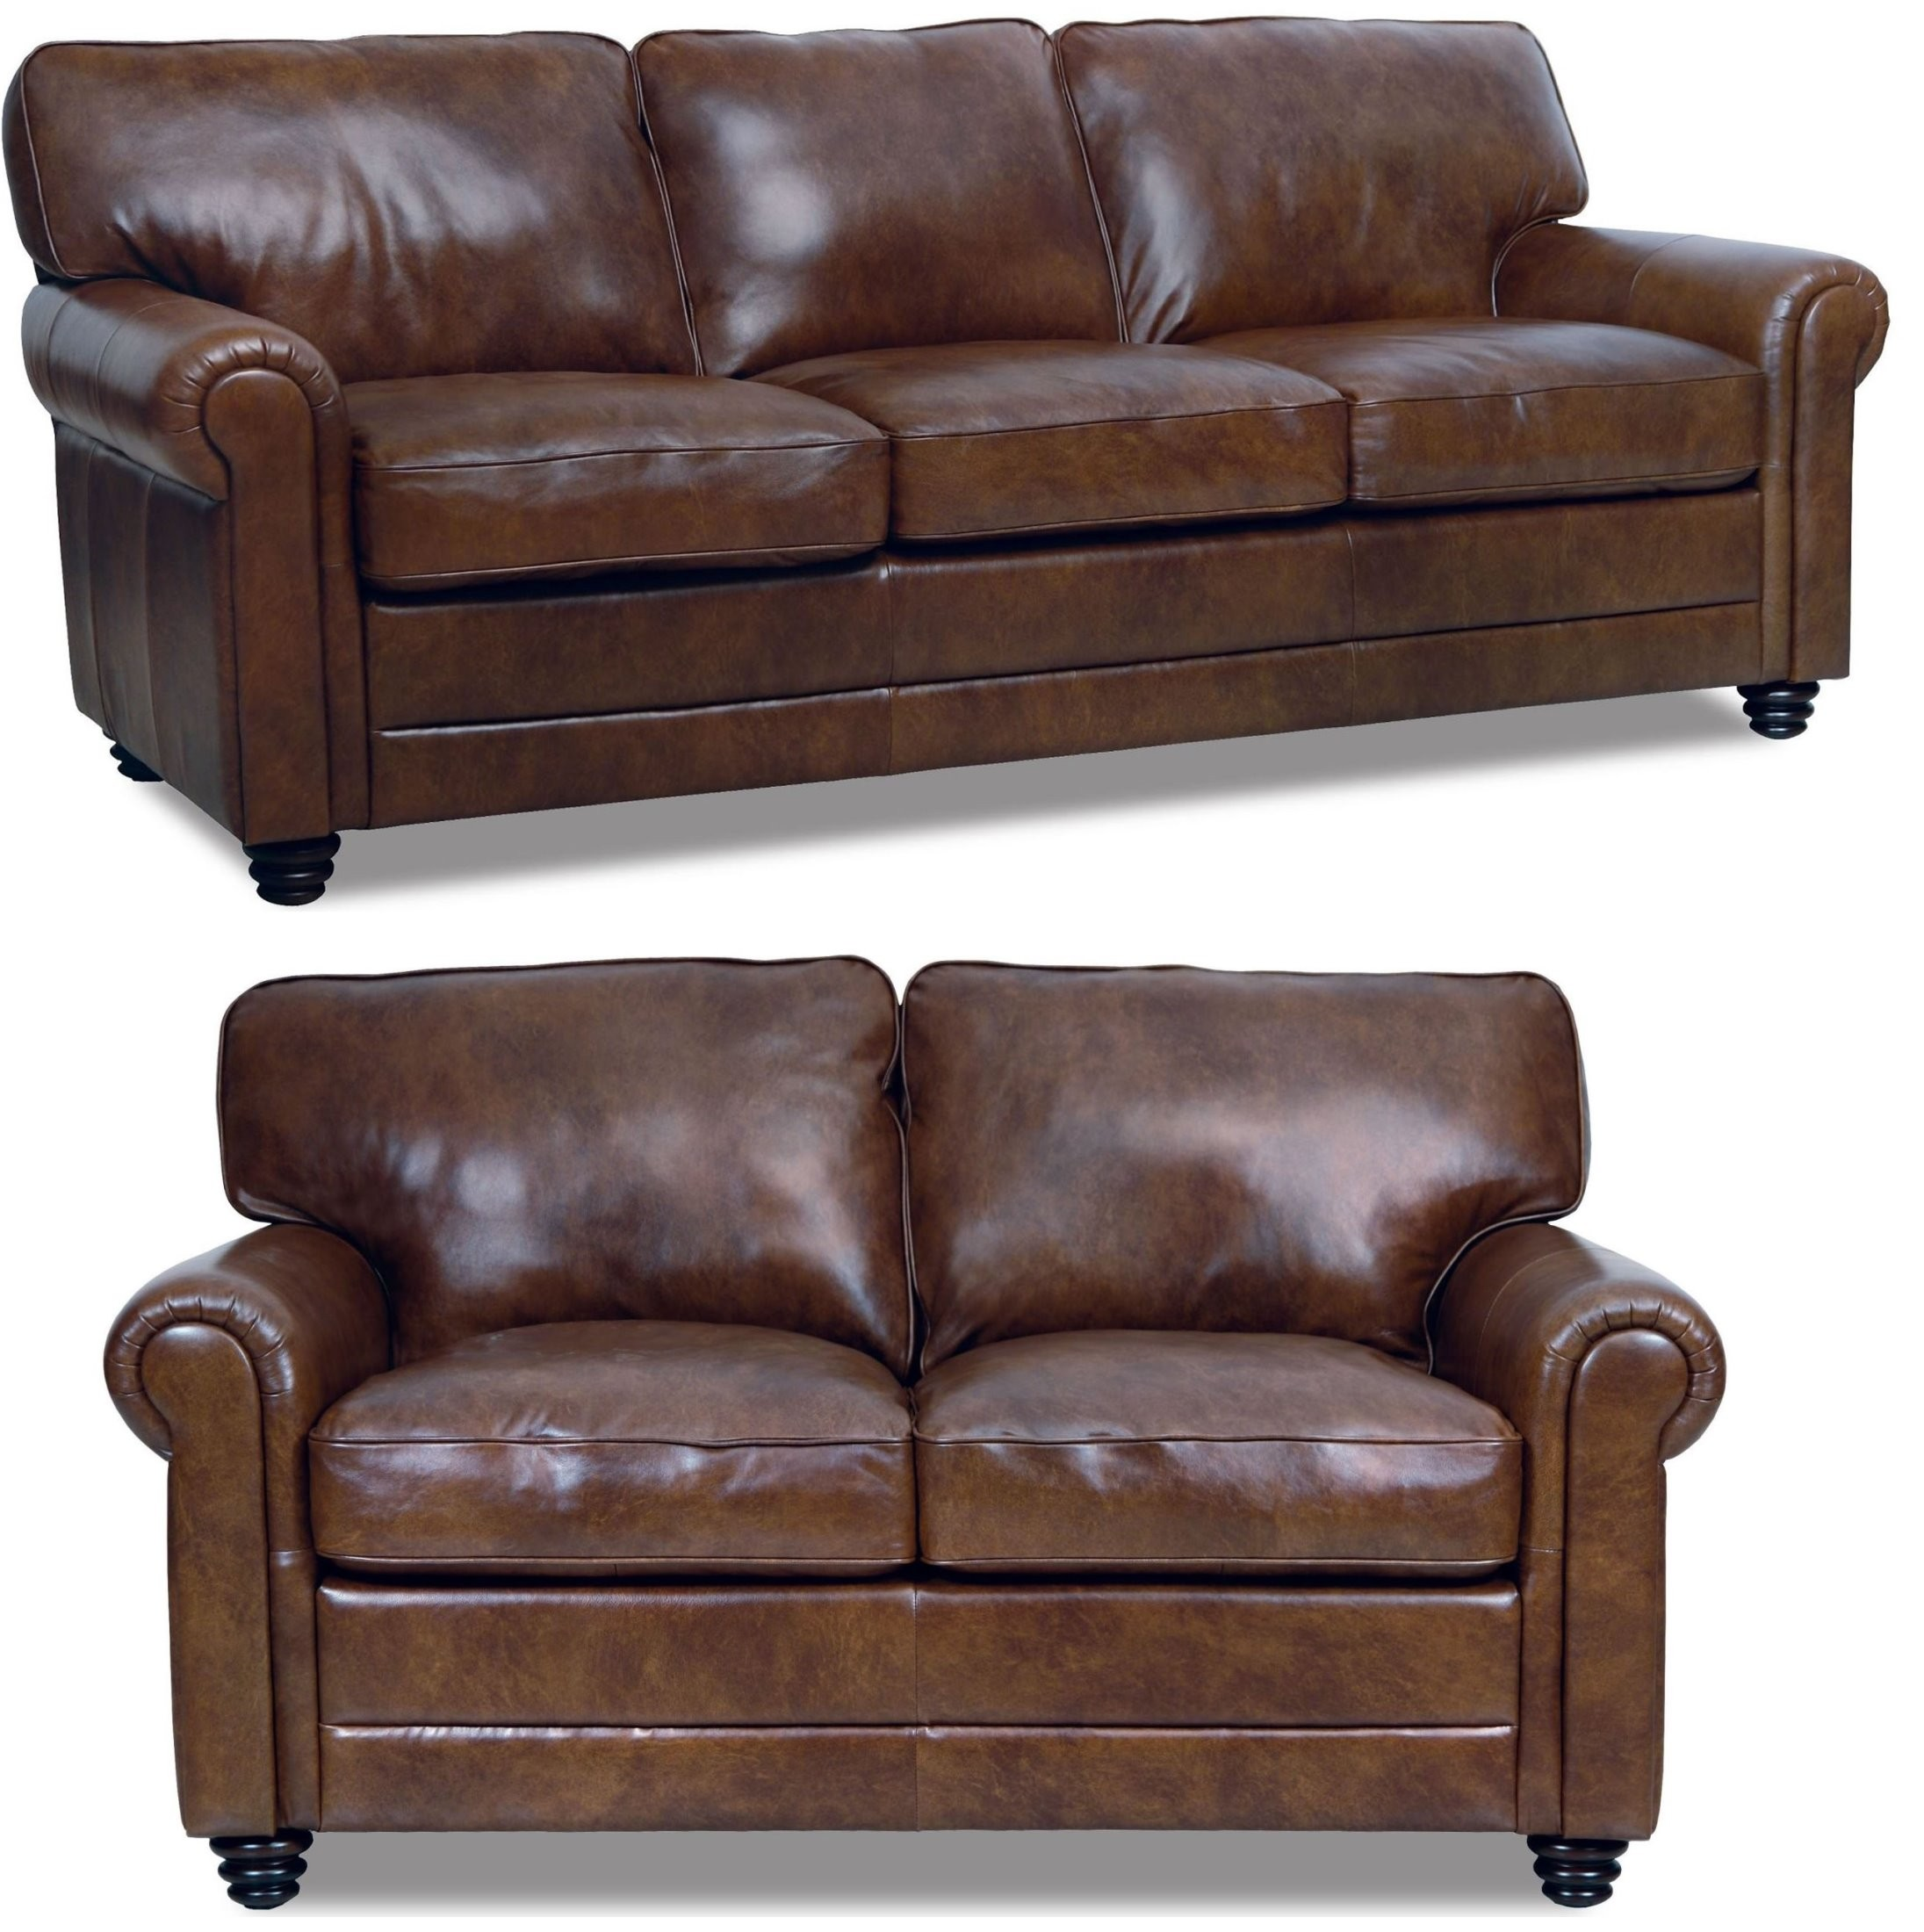 Leather Living Andrew Italian Leather Living Room Set From Luke Leather